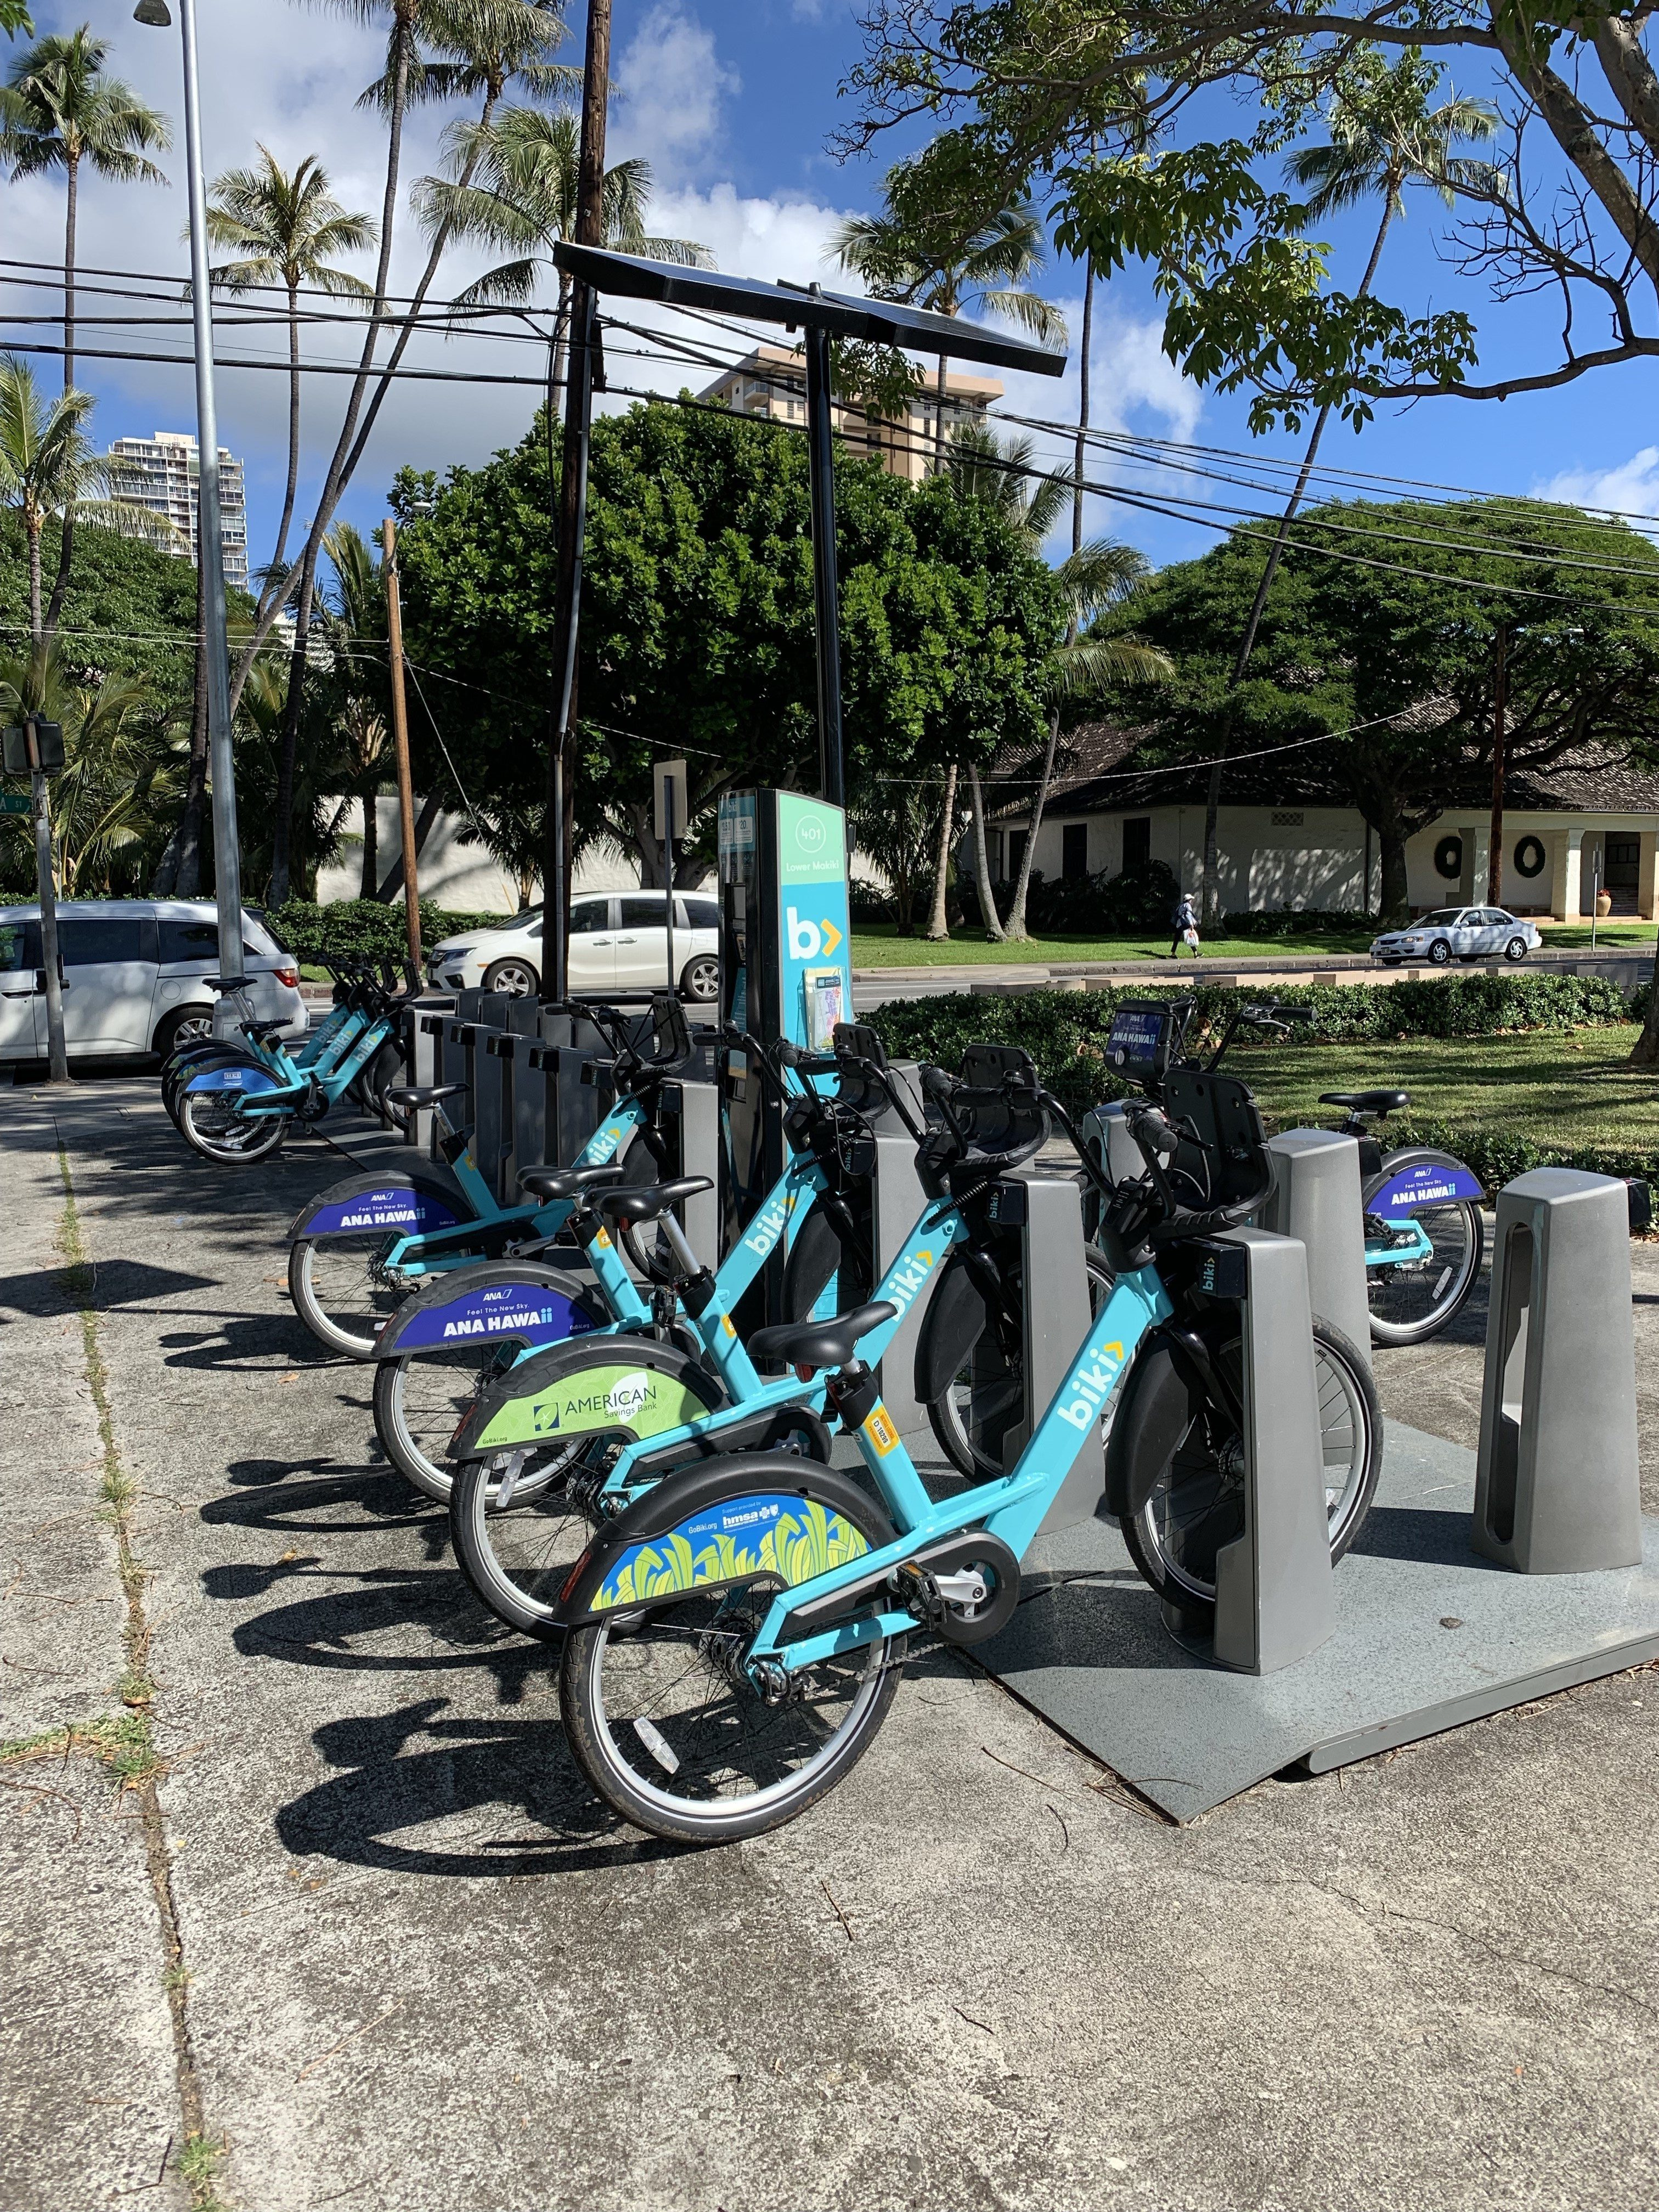 e2e966cc8c Cheap Parking in Waikiki - Hawaii Private Tours   Small Group Tours